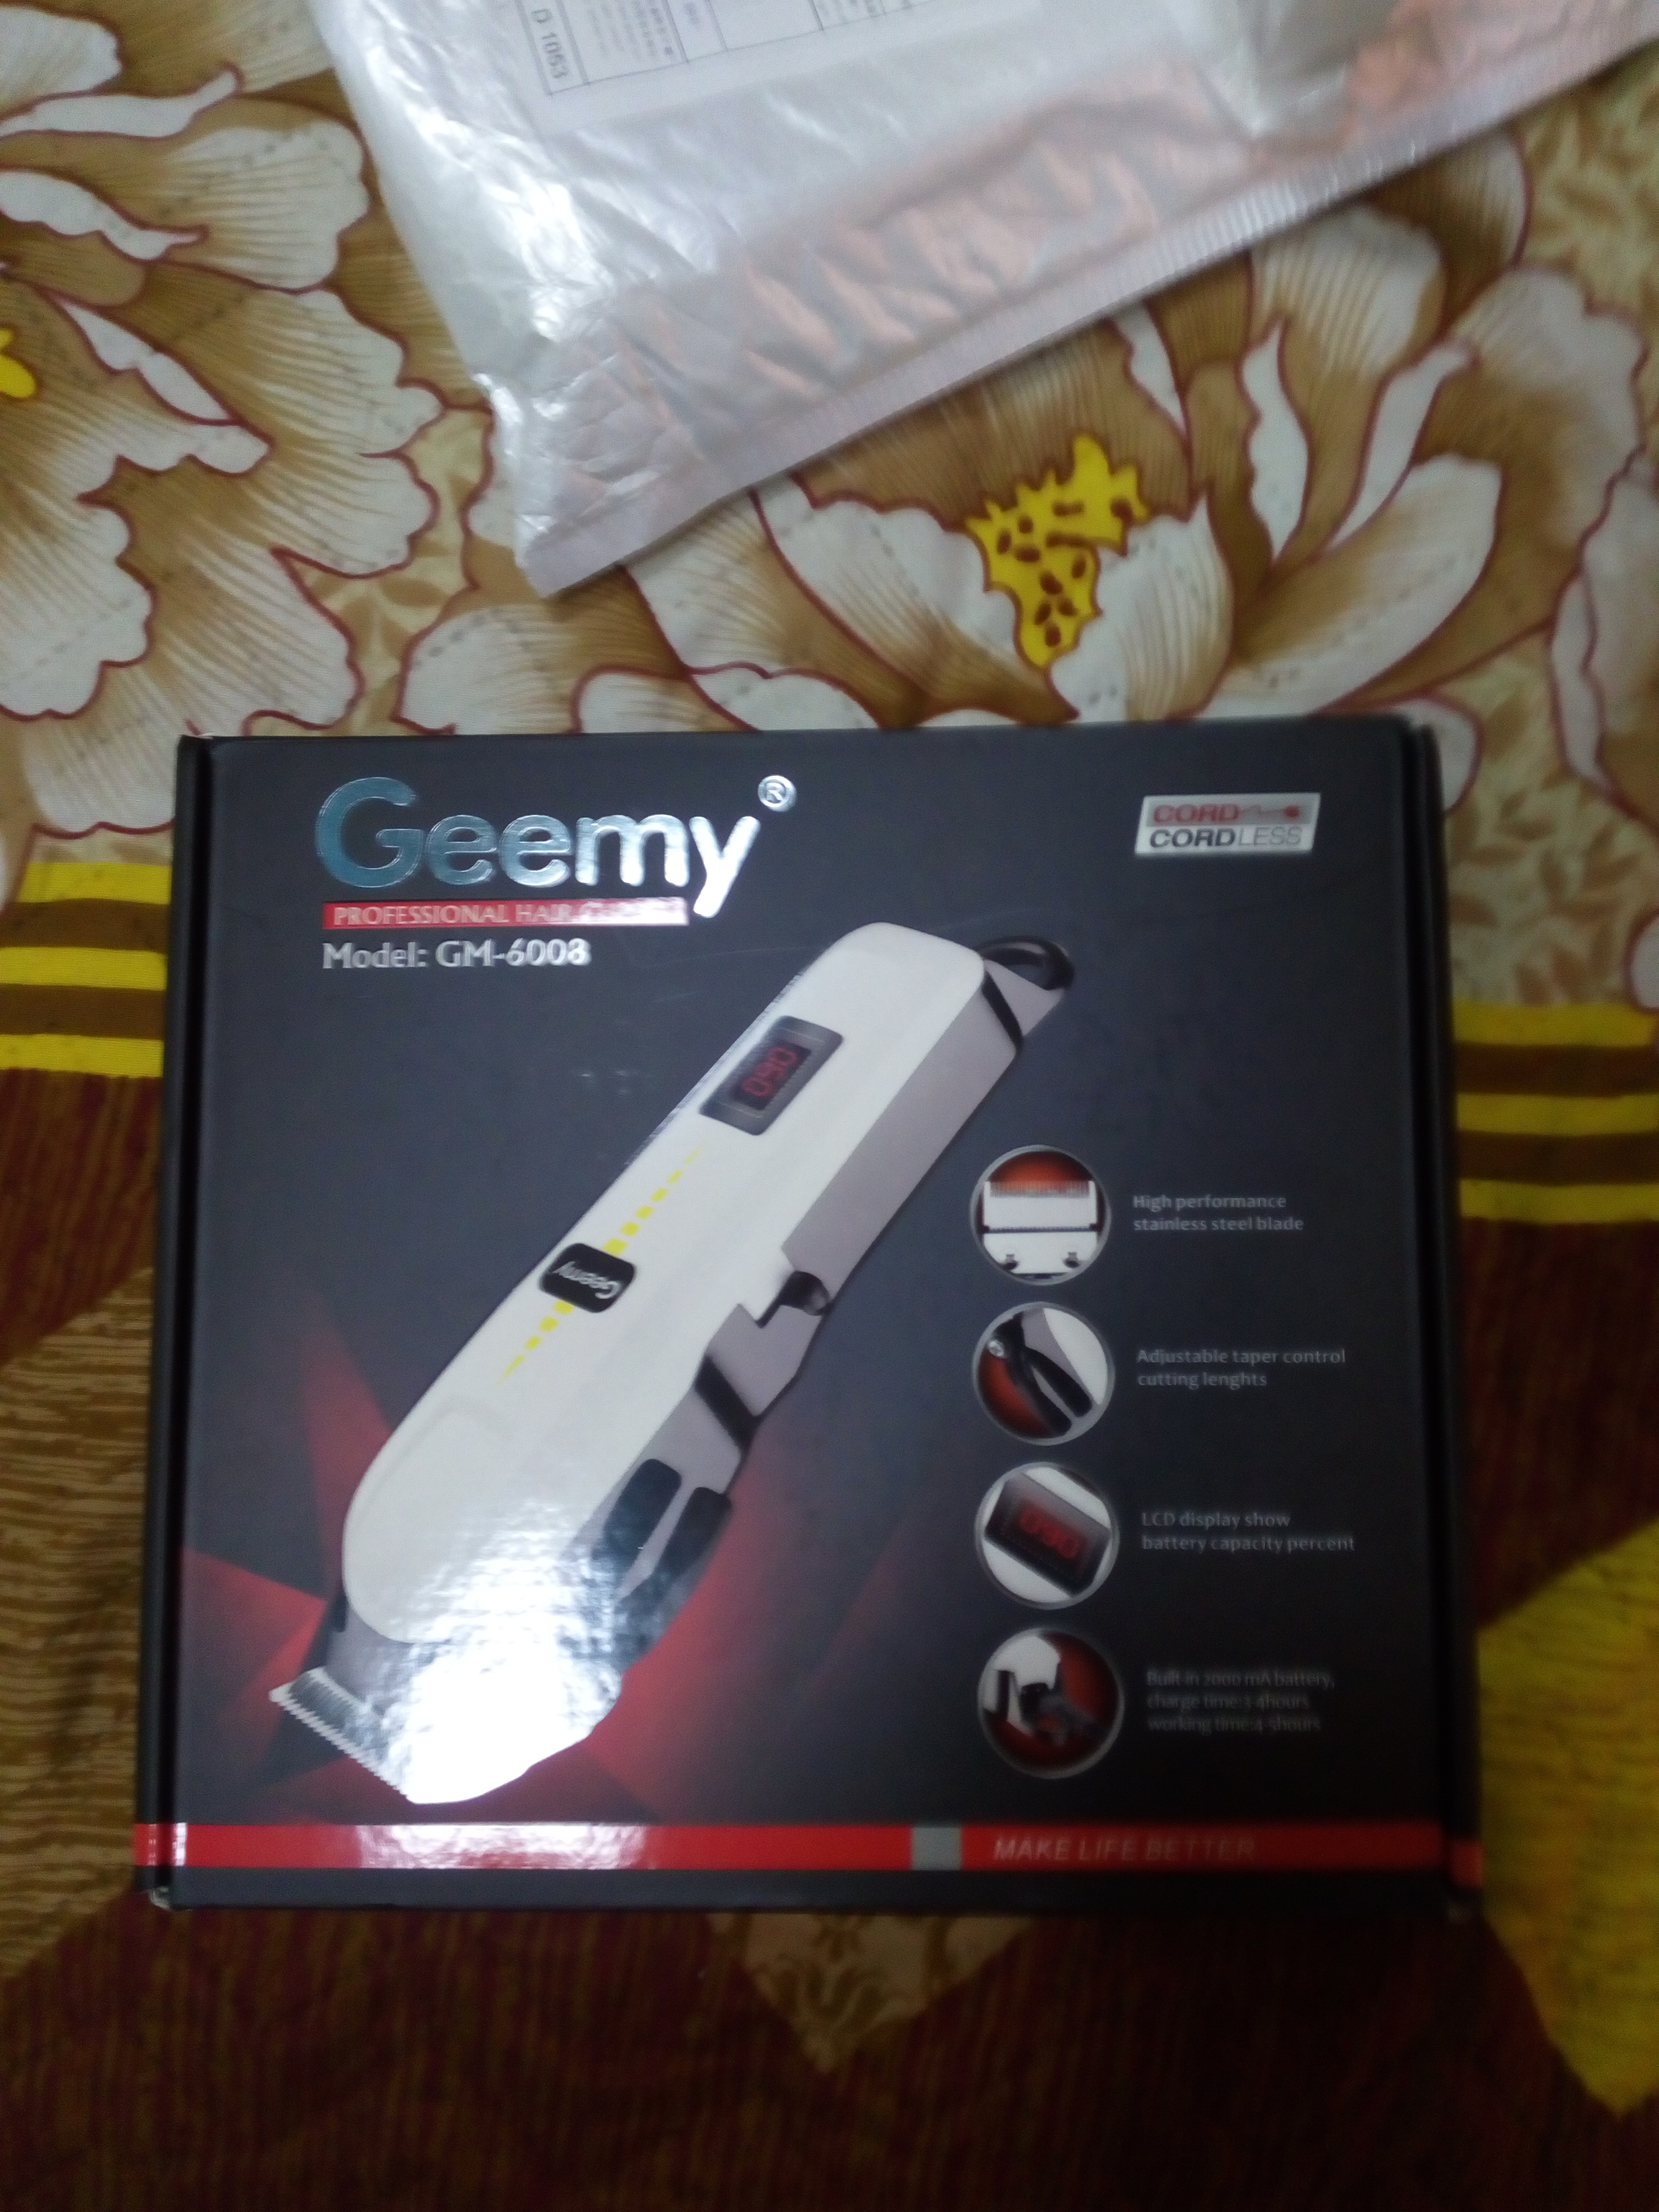 Geemy Professional Rechargeable Electric Cordless Hair Clipper and Beard Trimmer photo review